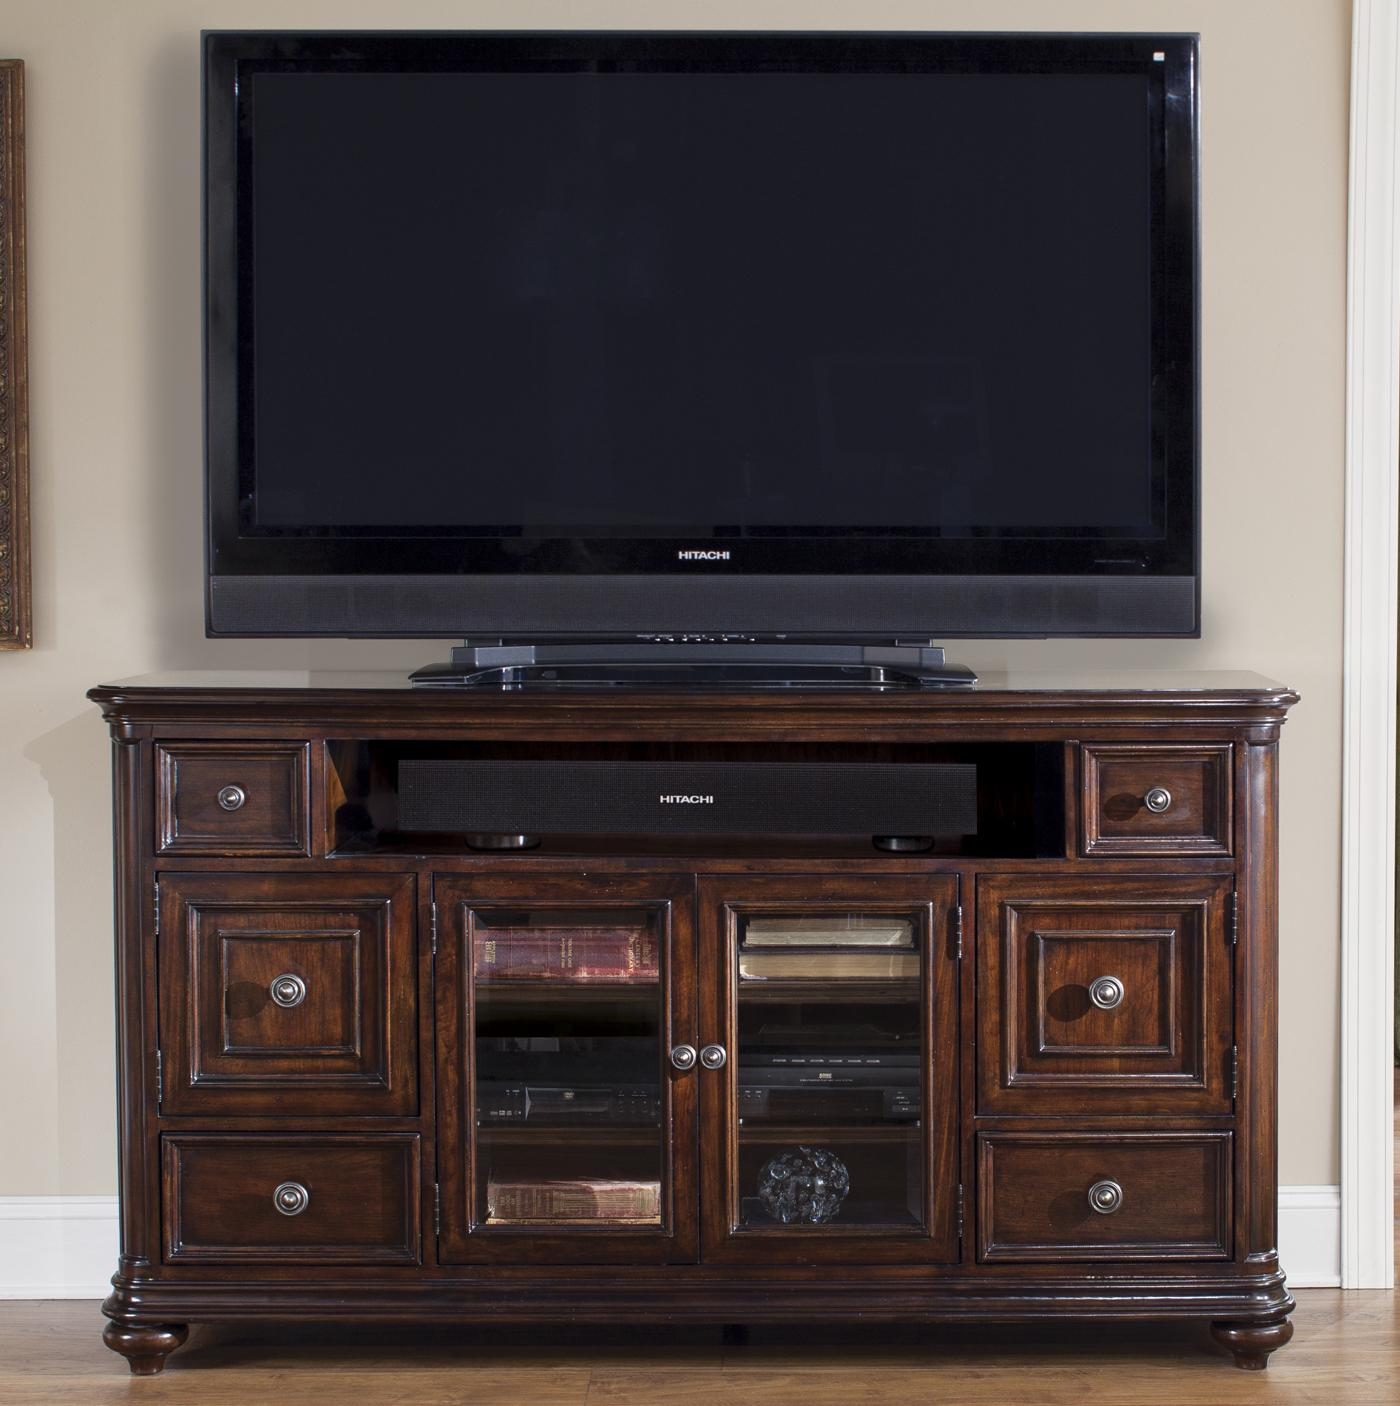 Liberty furniture kingston plantation tv console with door for Furniture kingston